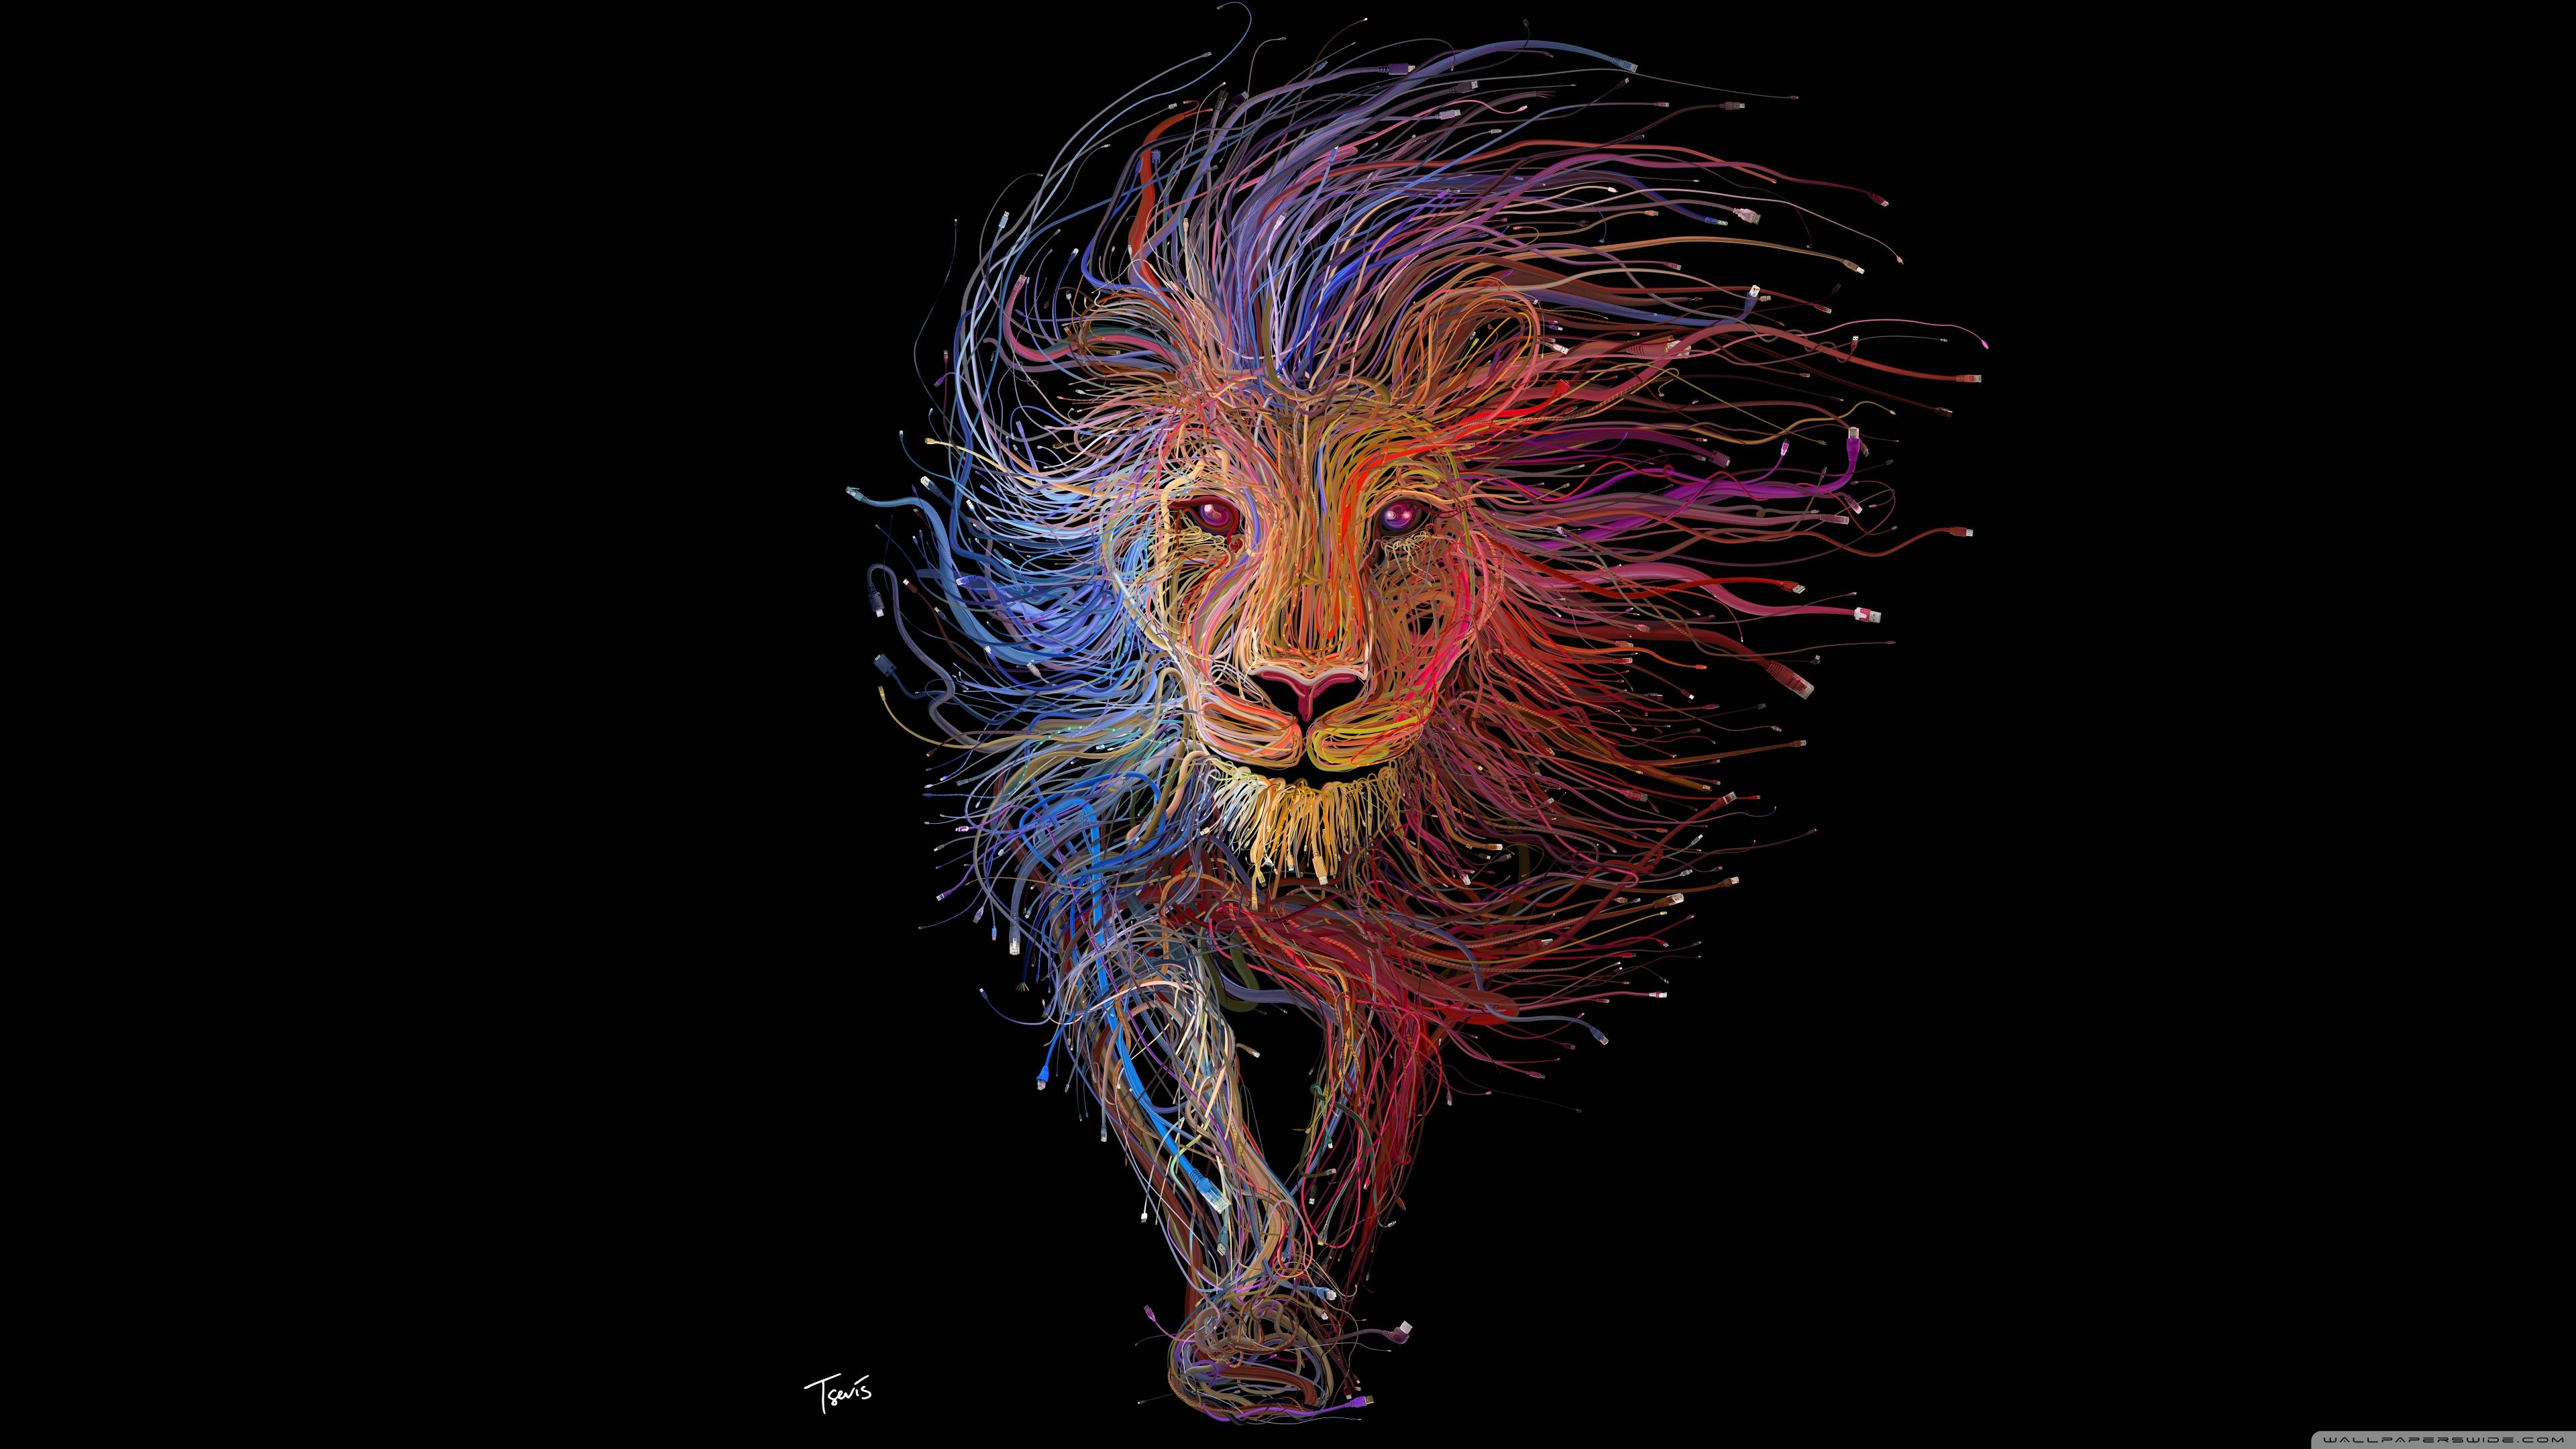 Abstract Lion Wallpapers Wallpaper Cave